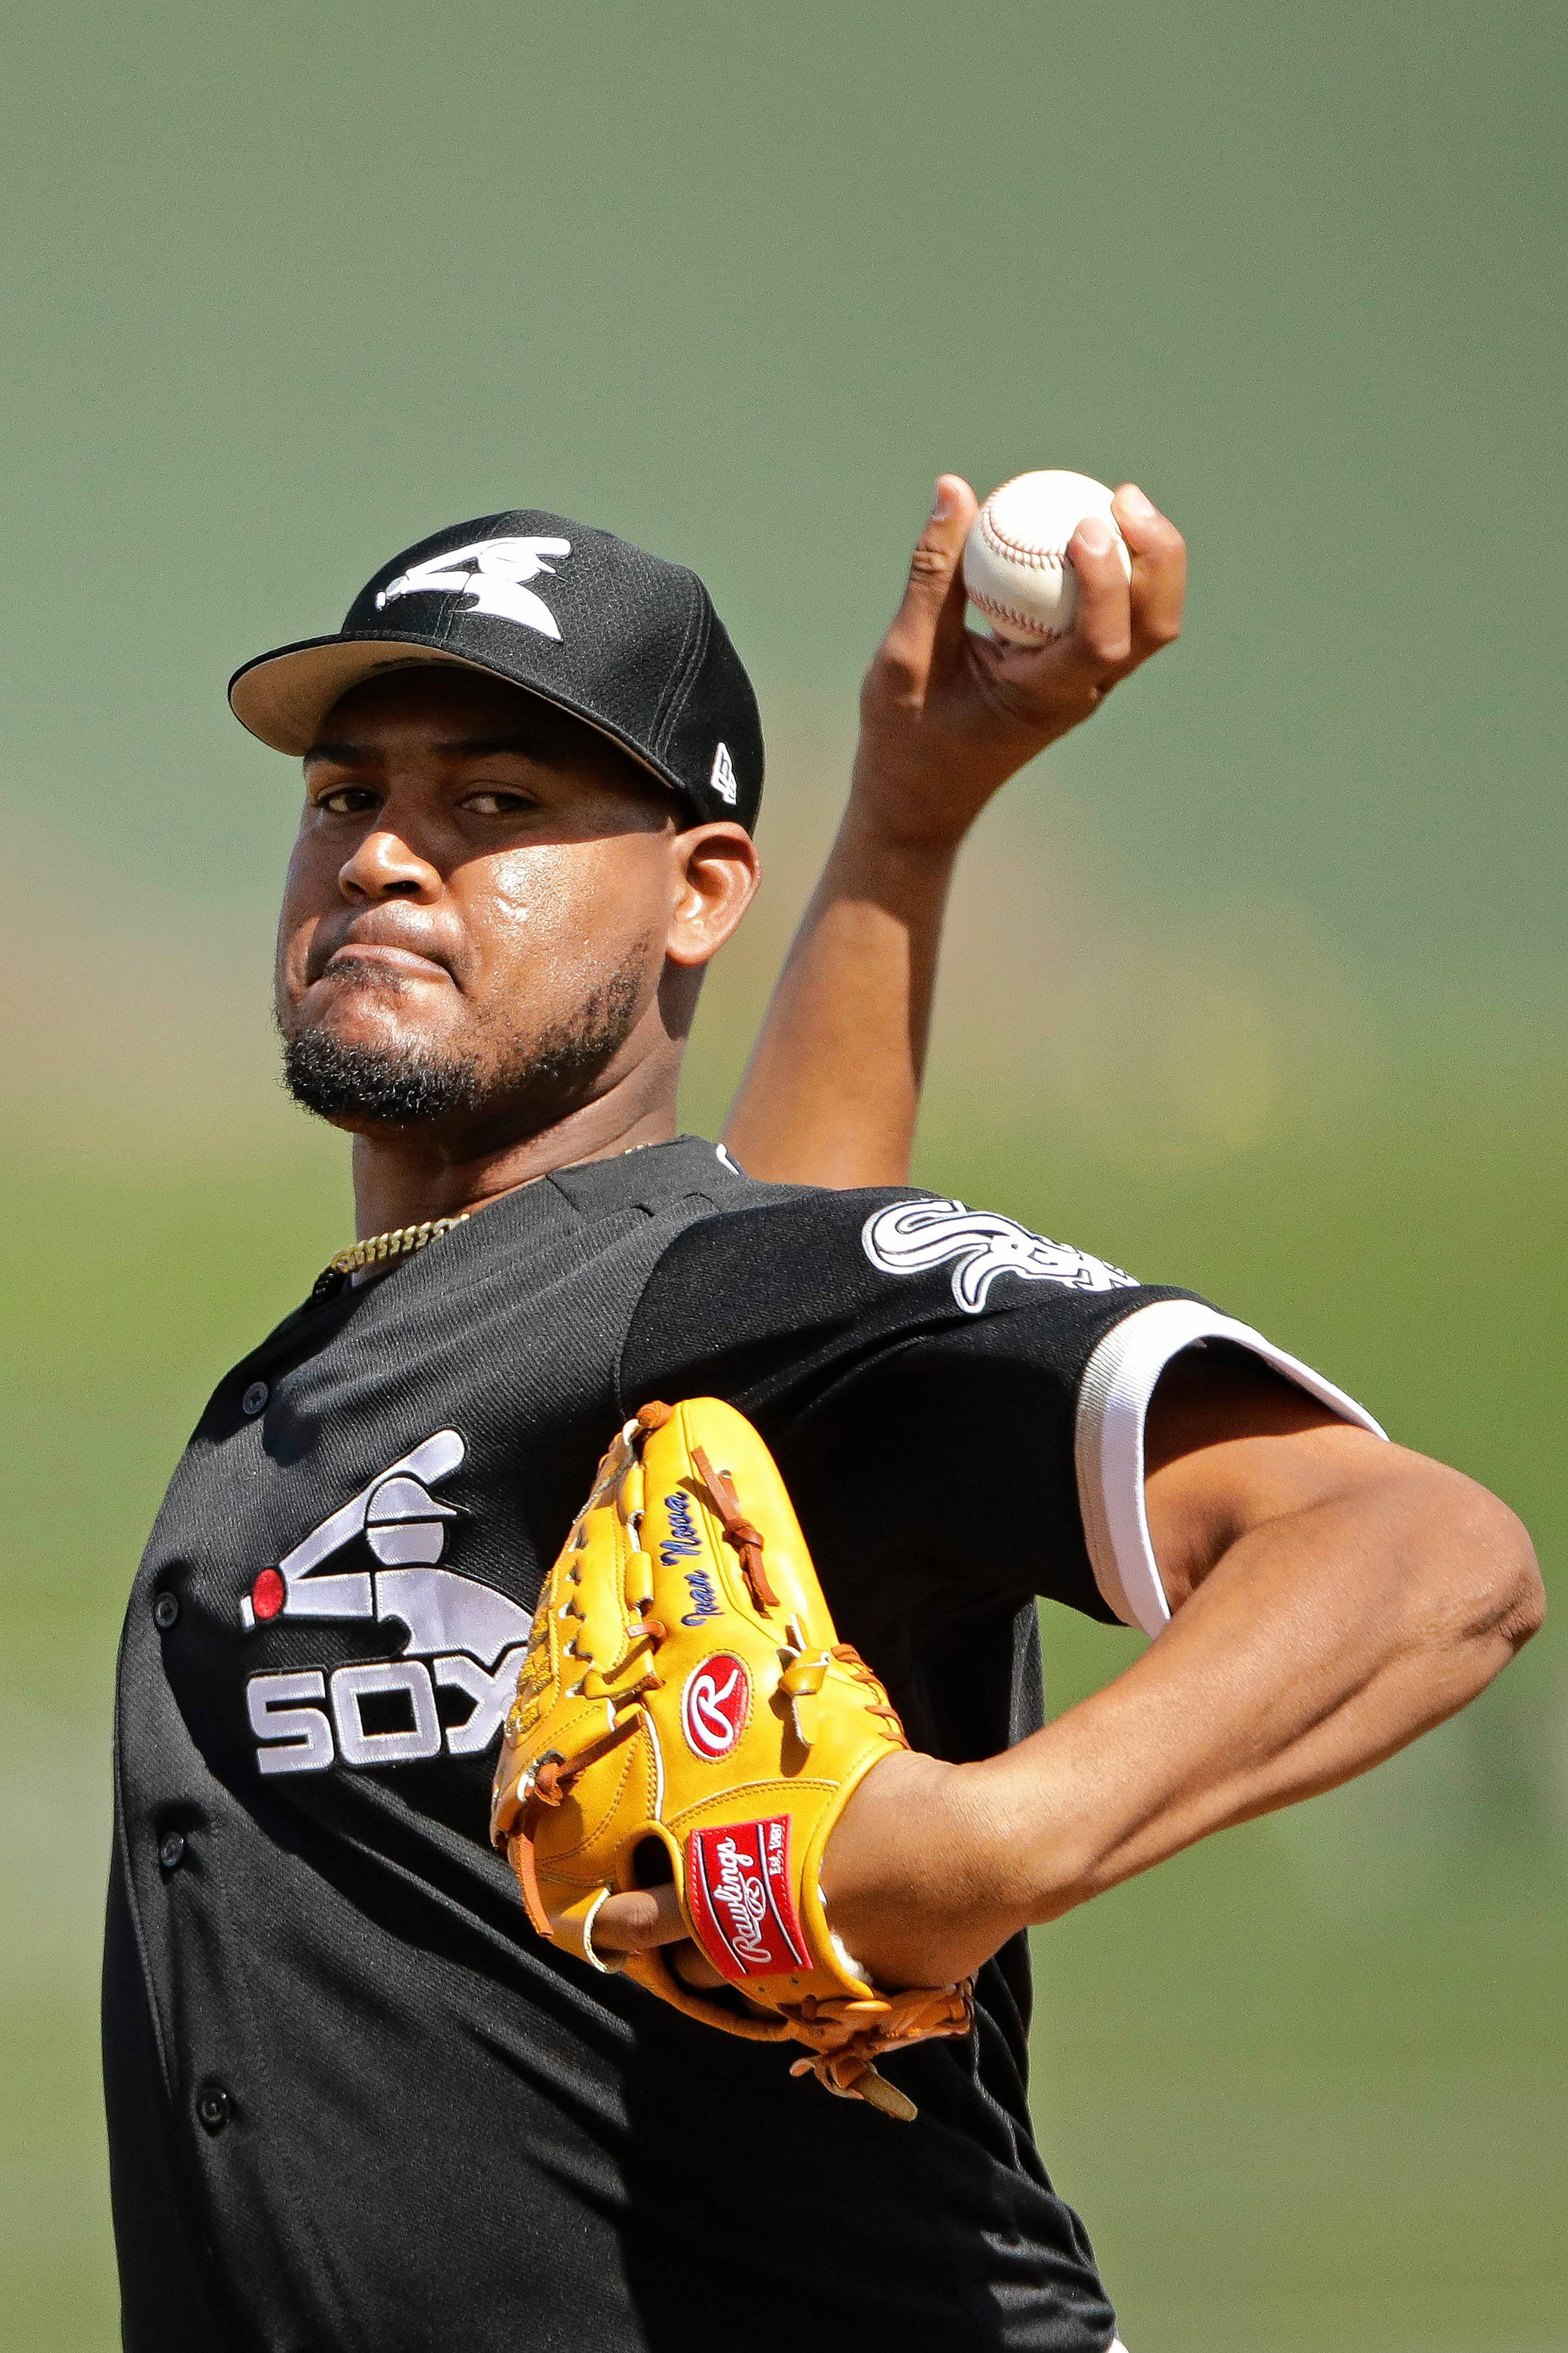 Chicago White Sox starting pitcher Ivan Nova throws during the first inning of the team's spring training baseball game against the Texas Rangers on Friday, March 1, 2019, in Surprise, Ariz.